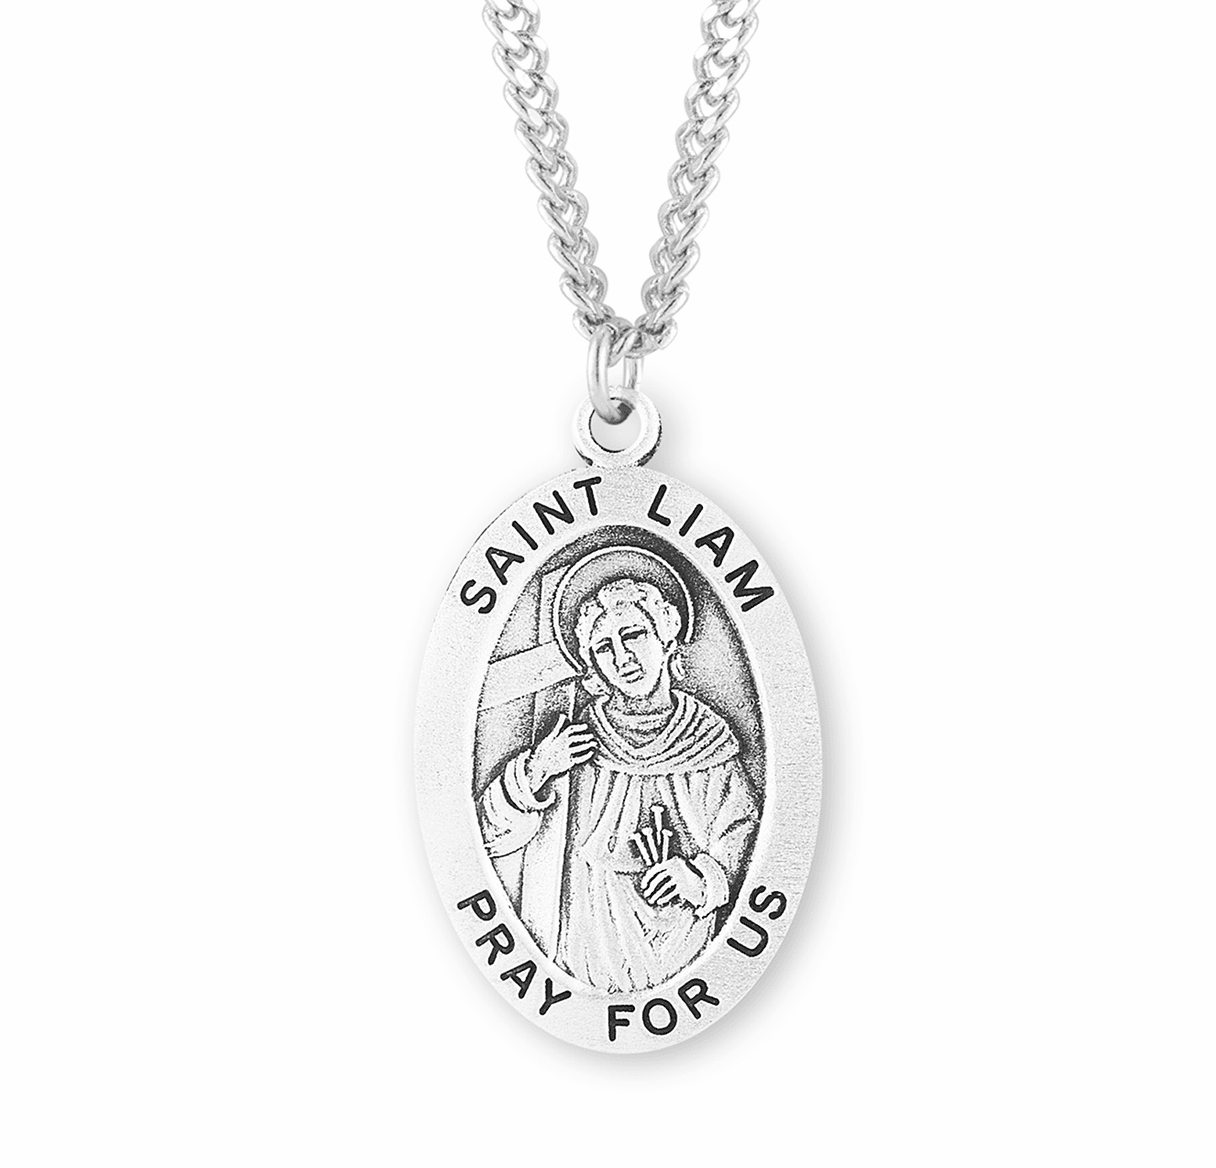 St Liam Large Oval Sterling Silver Patron Saint Medals by HMH Religious